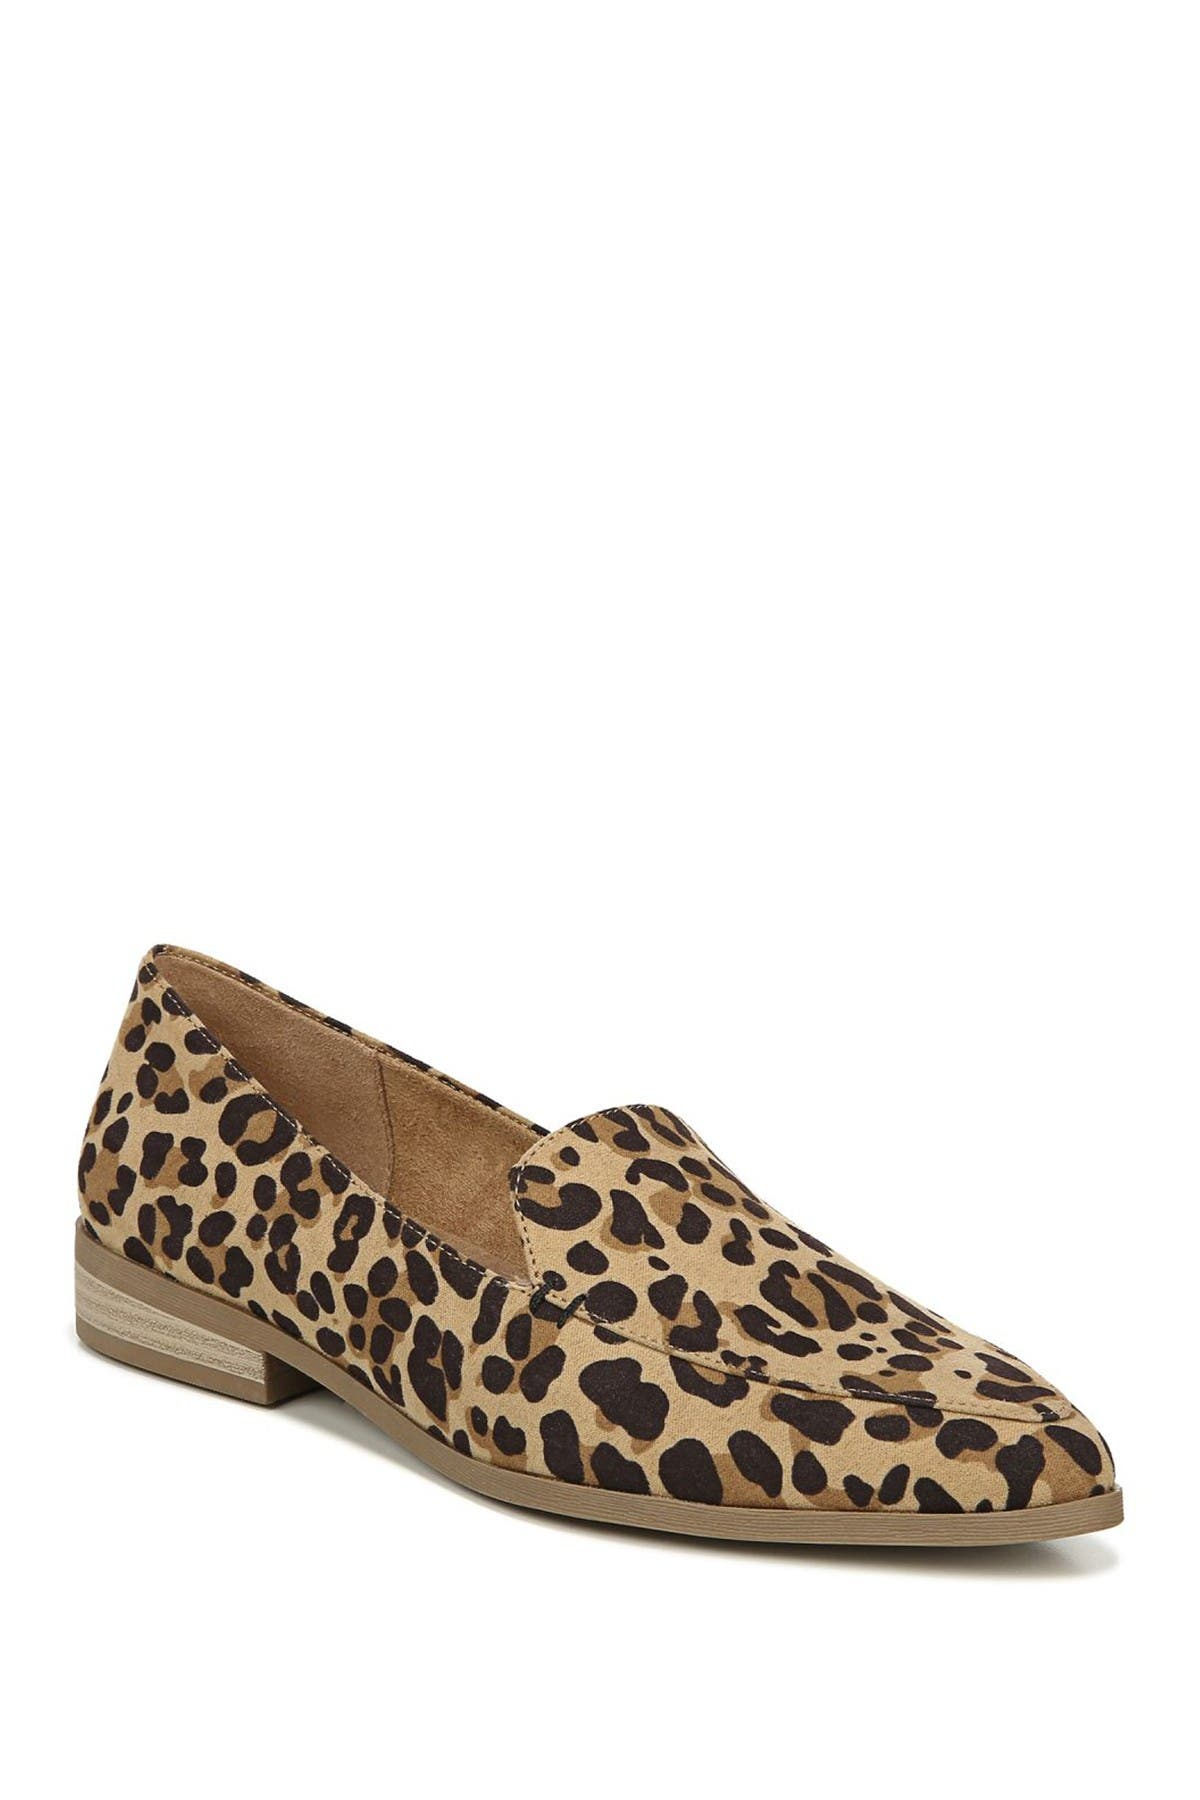 Image of Dr. Scholl's Astaire Leopard Print Slip-On Loafer